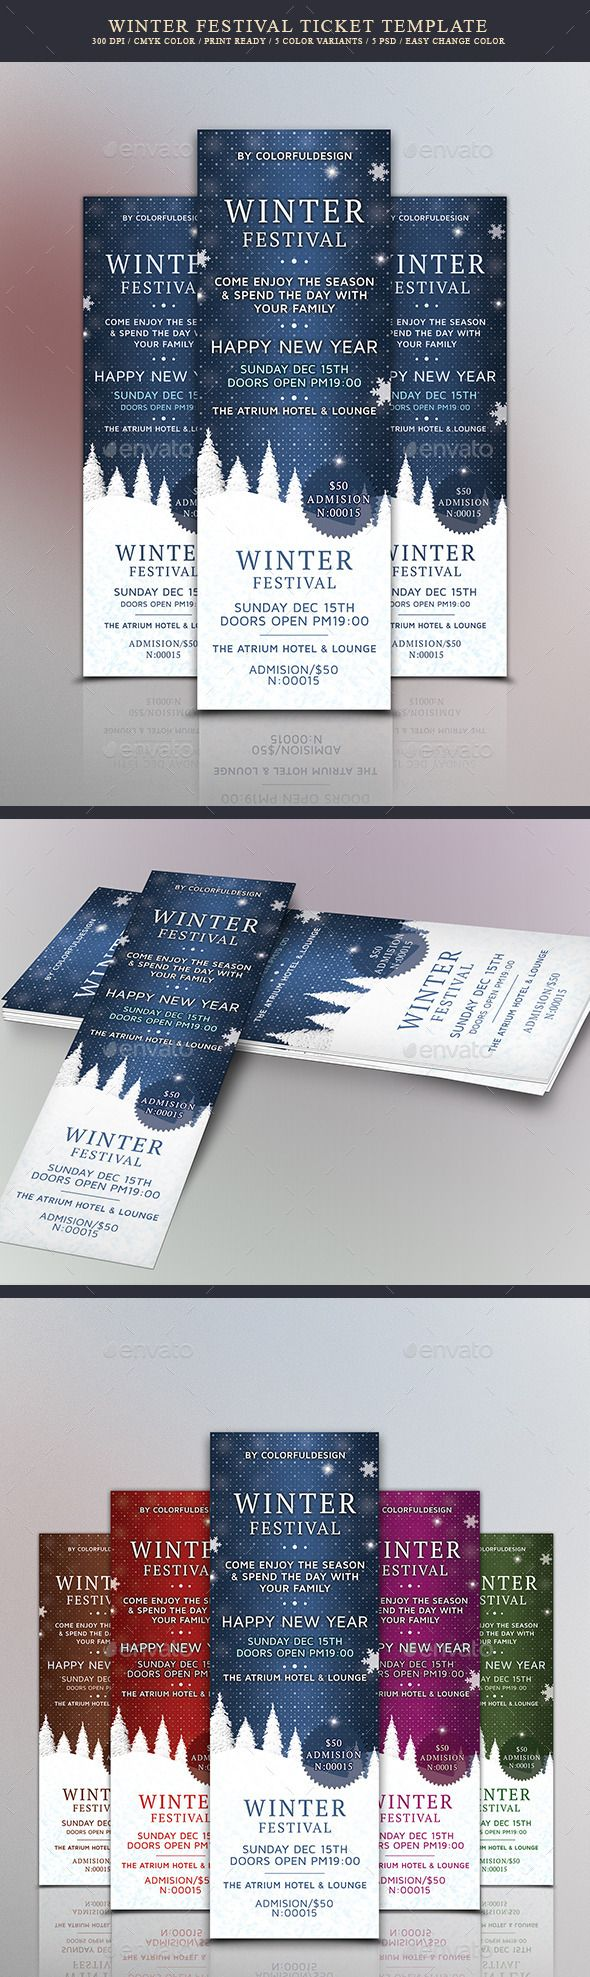 Concert Ticket Template Free Download Pleasing 139 Best Invitation Design Images On Pinterest  Christmas Parties .